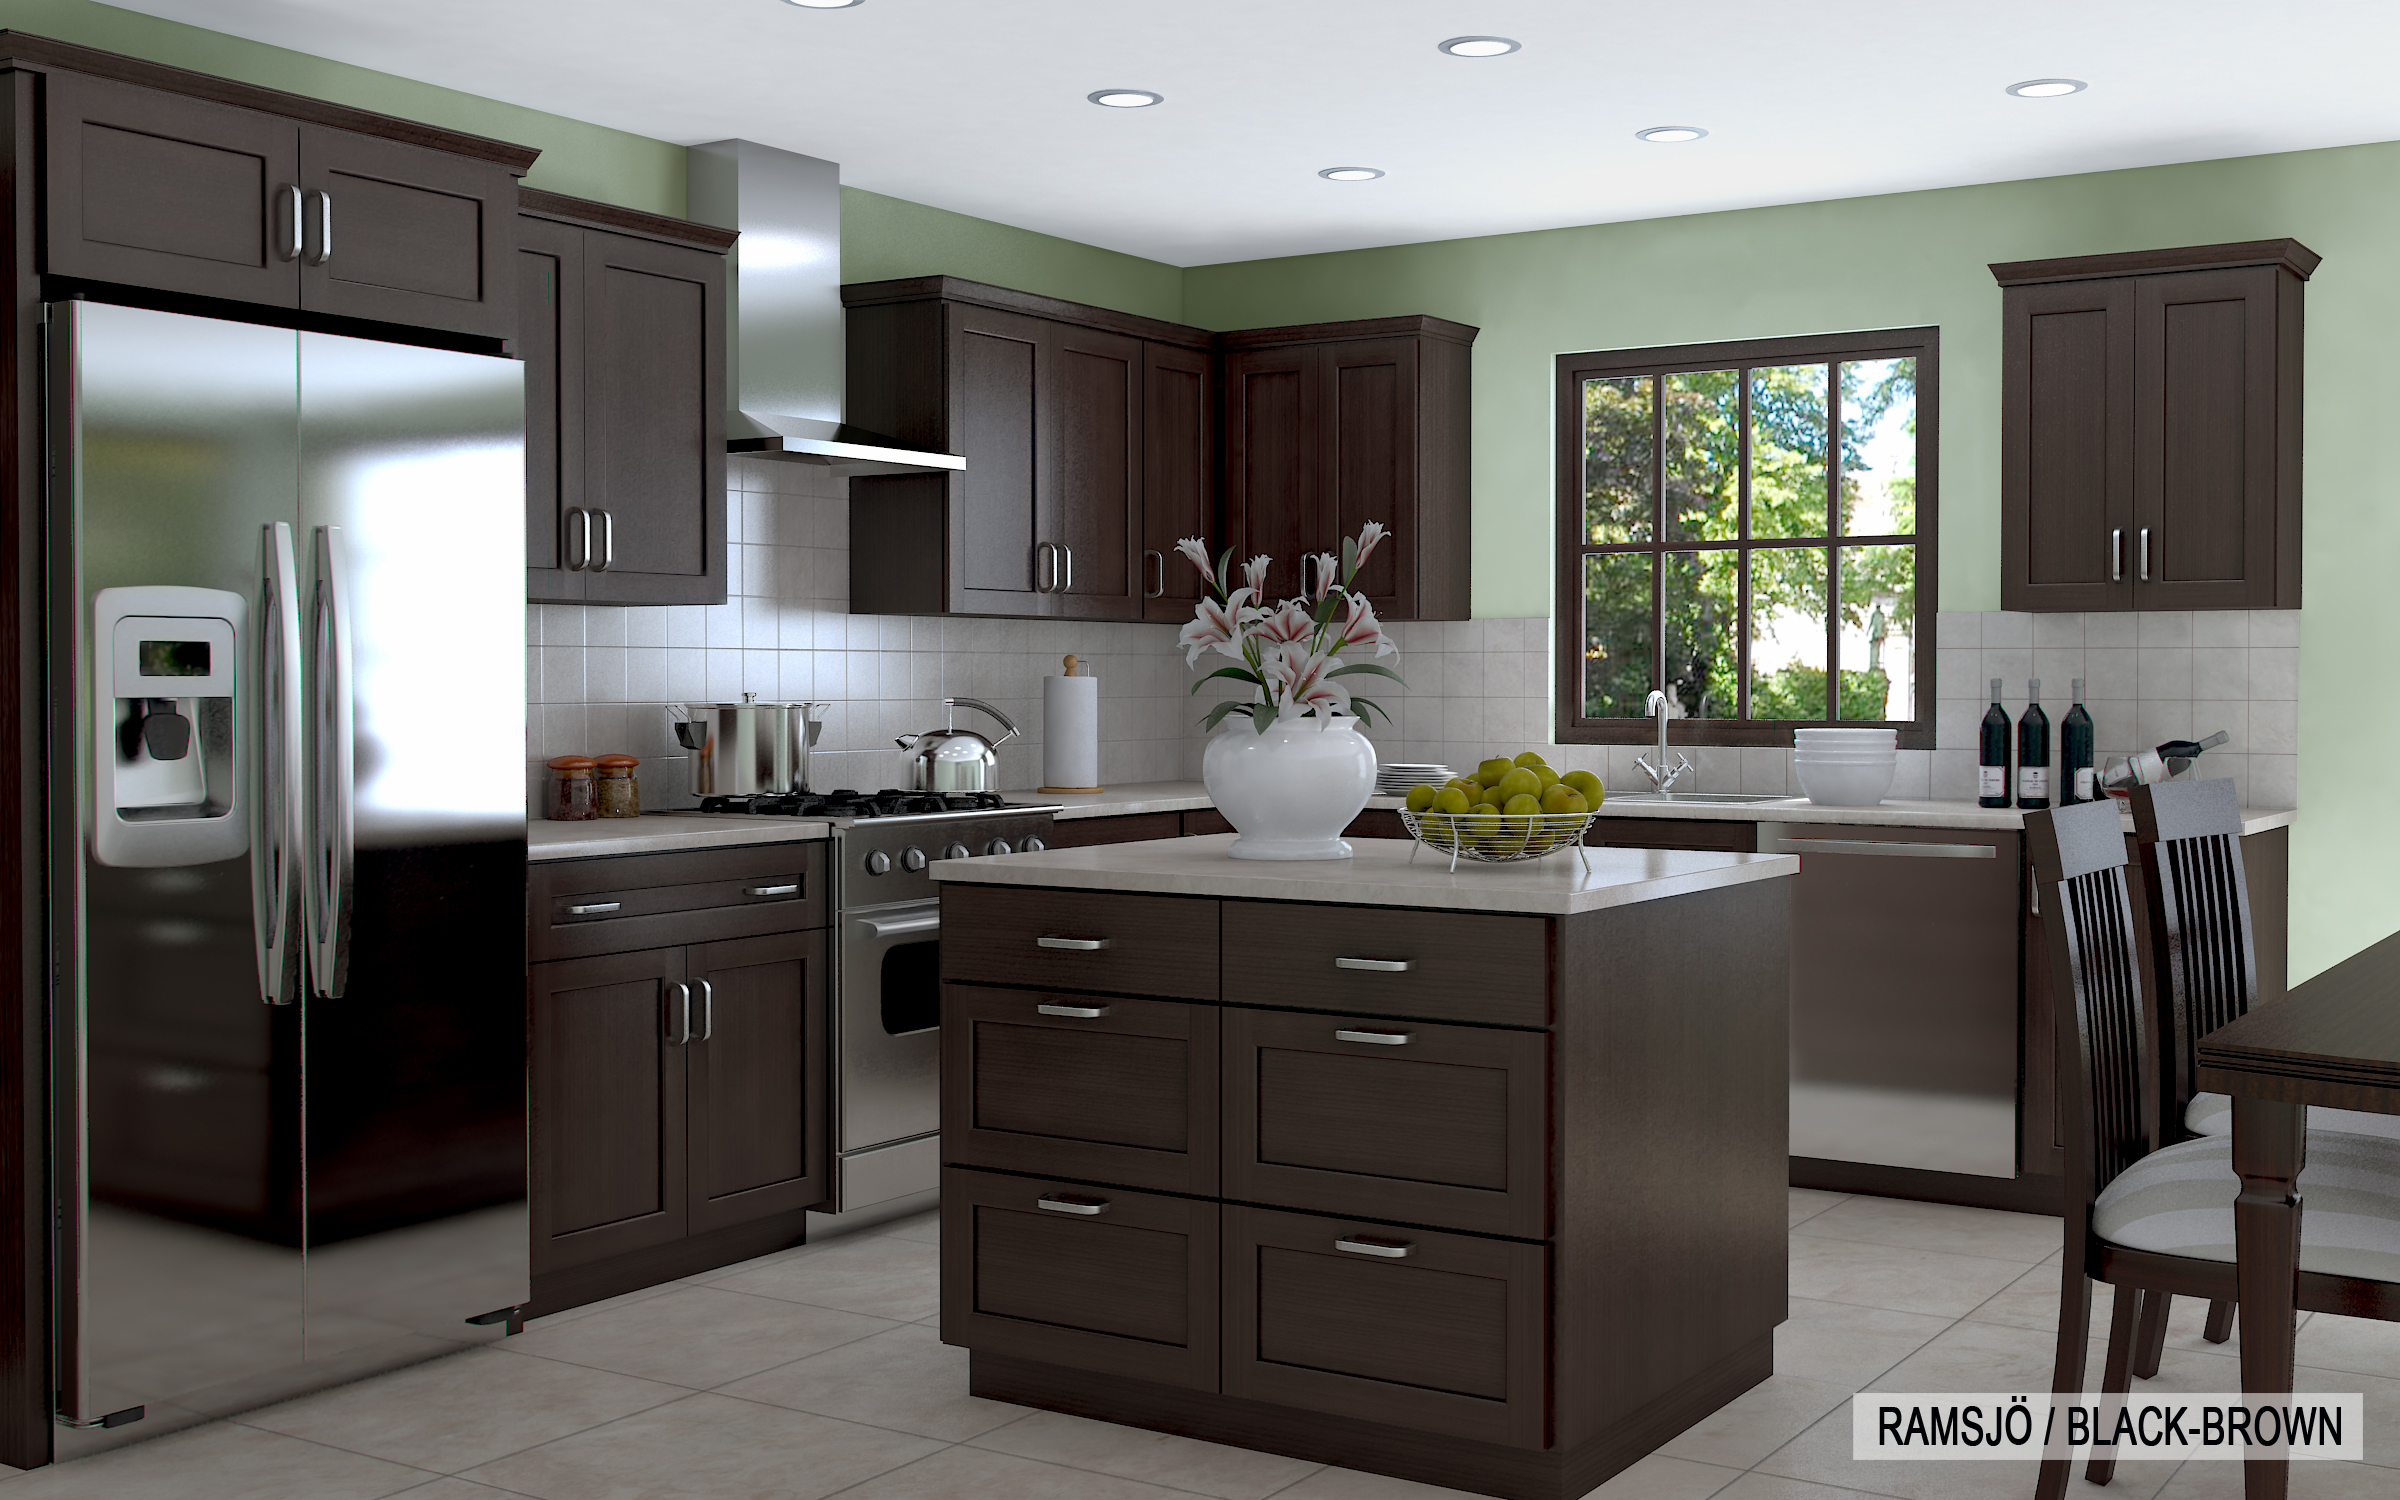 kitchen cabinets design online ikdo the ikea kitchen design 995